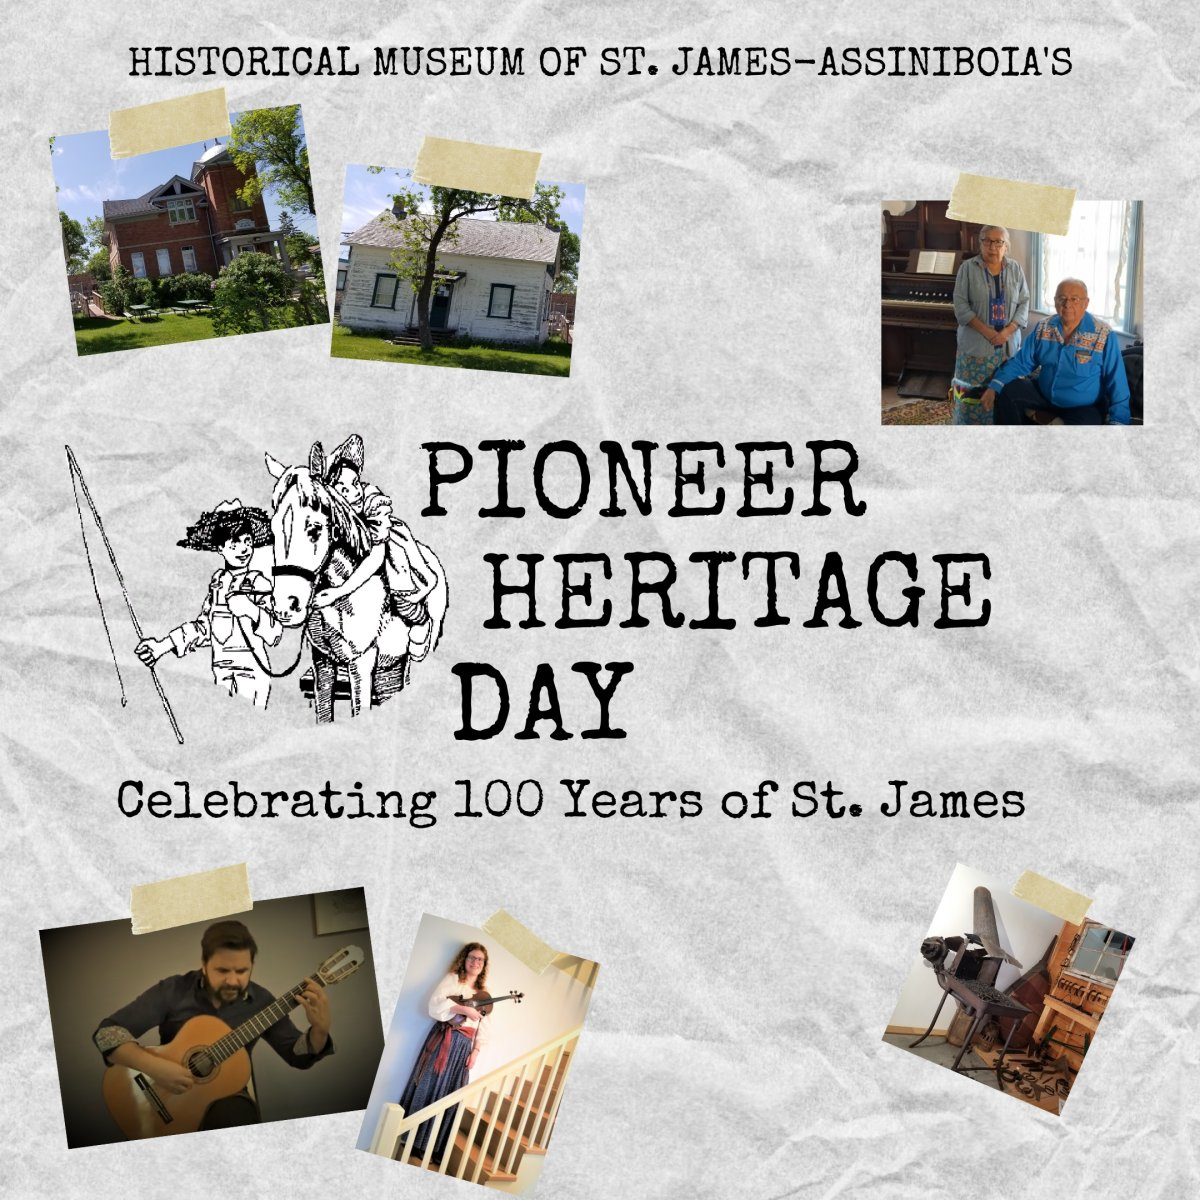 This year Pioneer Heritage Day is going virtual. Check out our livestream on YouTube at St. James-Assiniboia Museum for performances from Franco-Manitoban Jiggers, fiddlers, guitarists, and more! Join us for virtual tours of the museum. Find all the details at stjamesmuseum.com, Facebook (The Historical Museum of St. James-Assiniboia), and Instagram (@stjamesassiniboia).